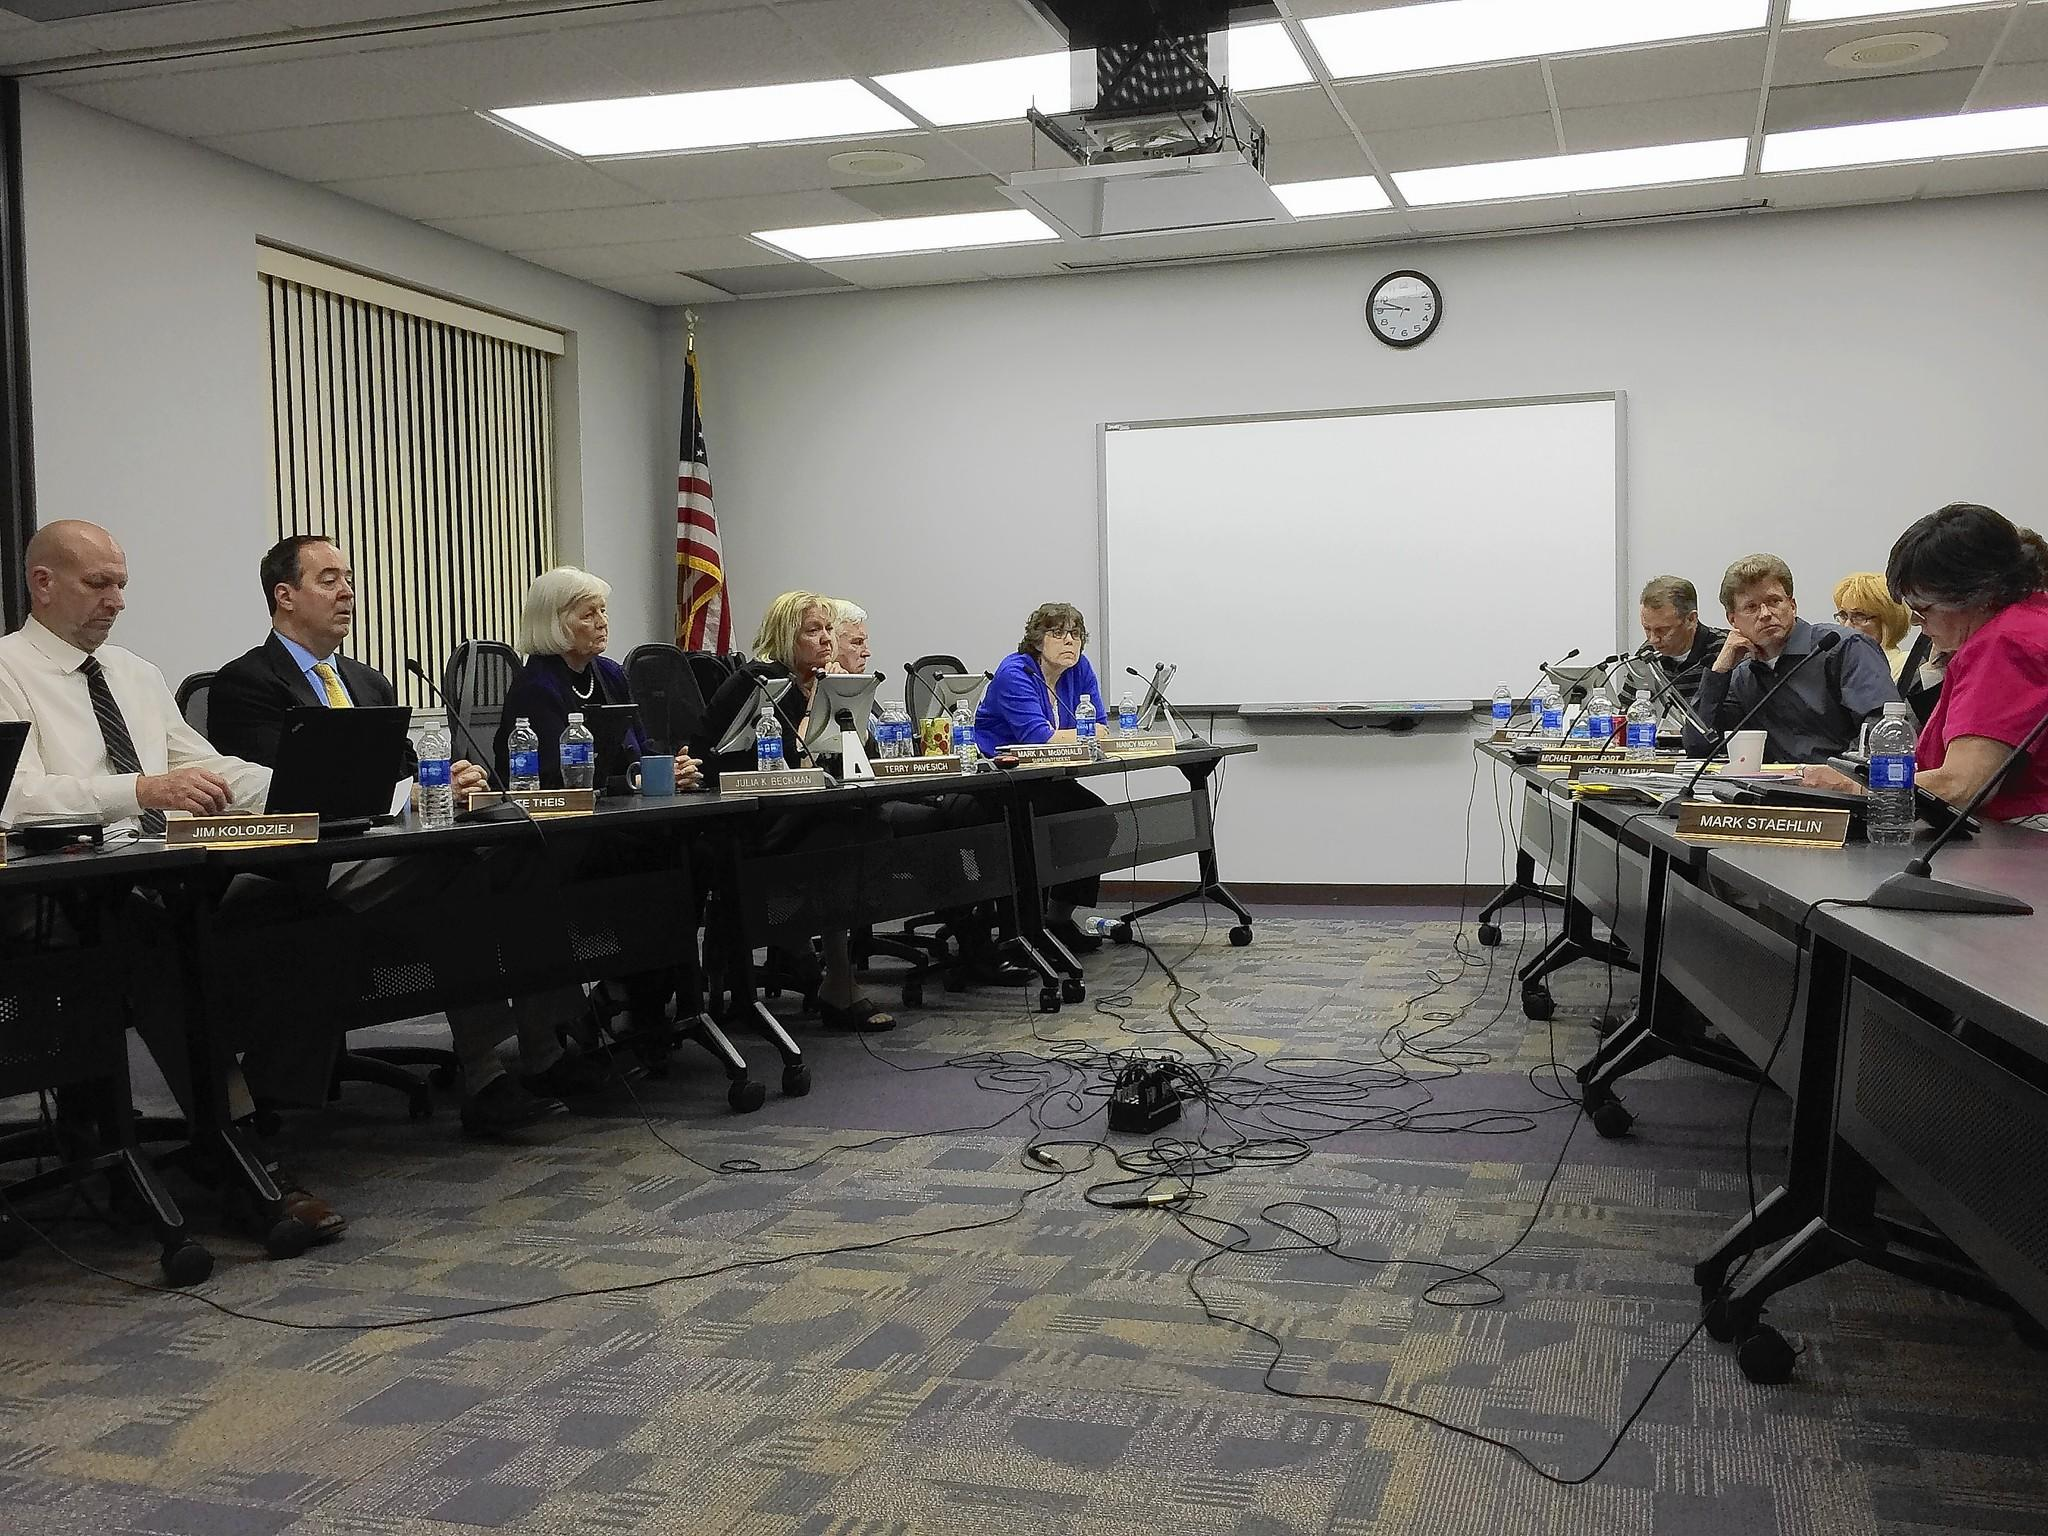 Downers Grove's District 99 school board approved raises for more than 200 members of the support staff.